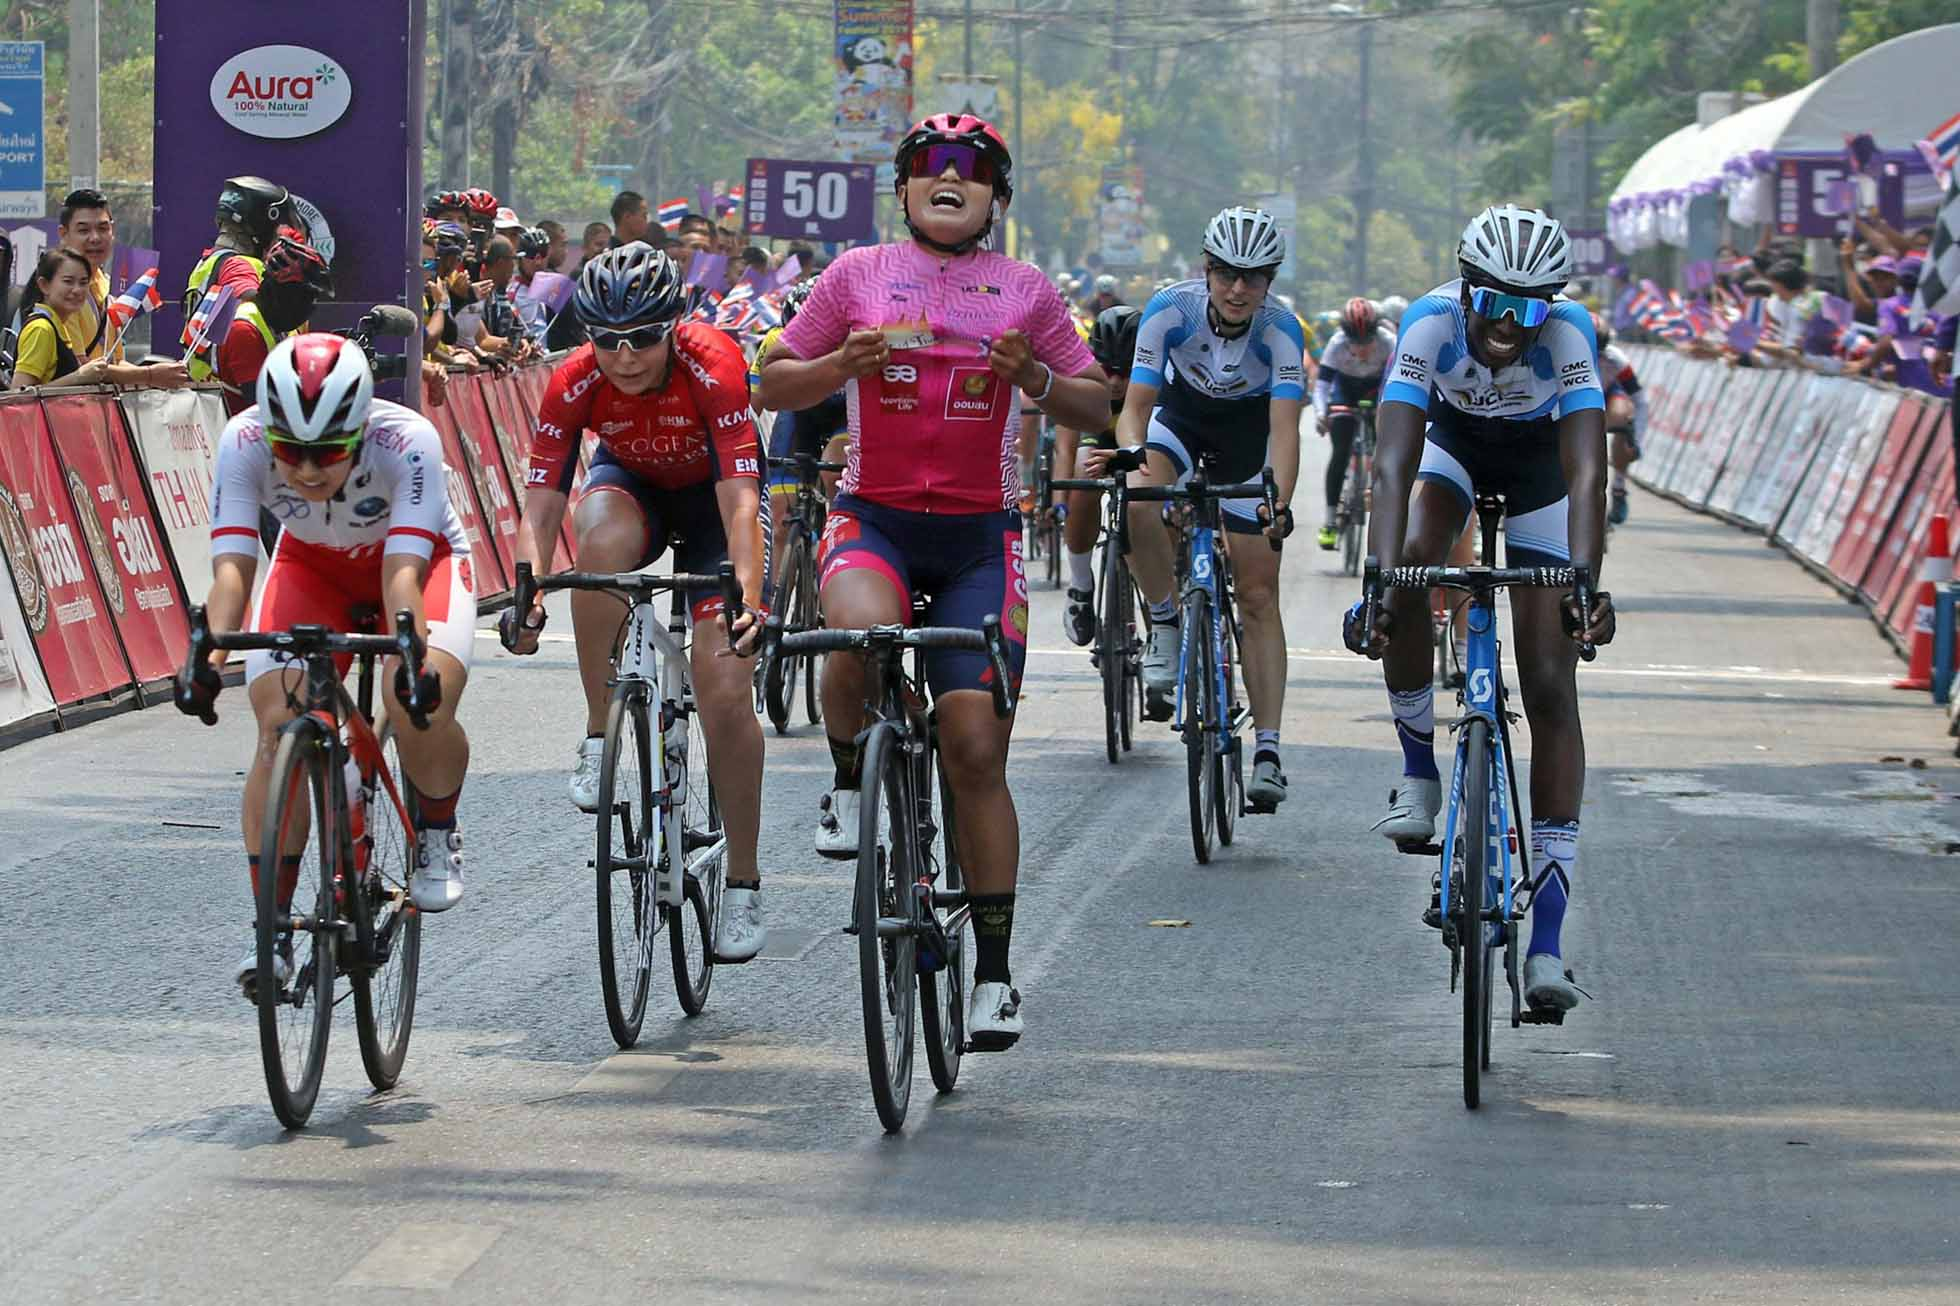 The Princess Maha Chakri Sirindhorn's Cup Women's Tour of Thailand 2019 stage3